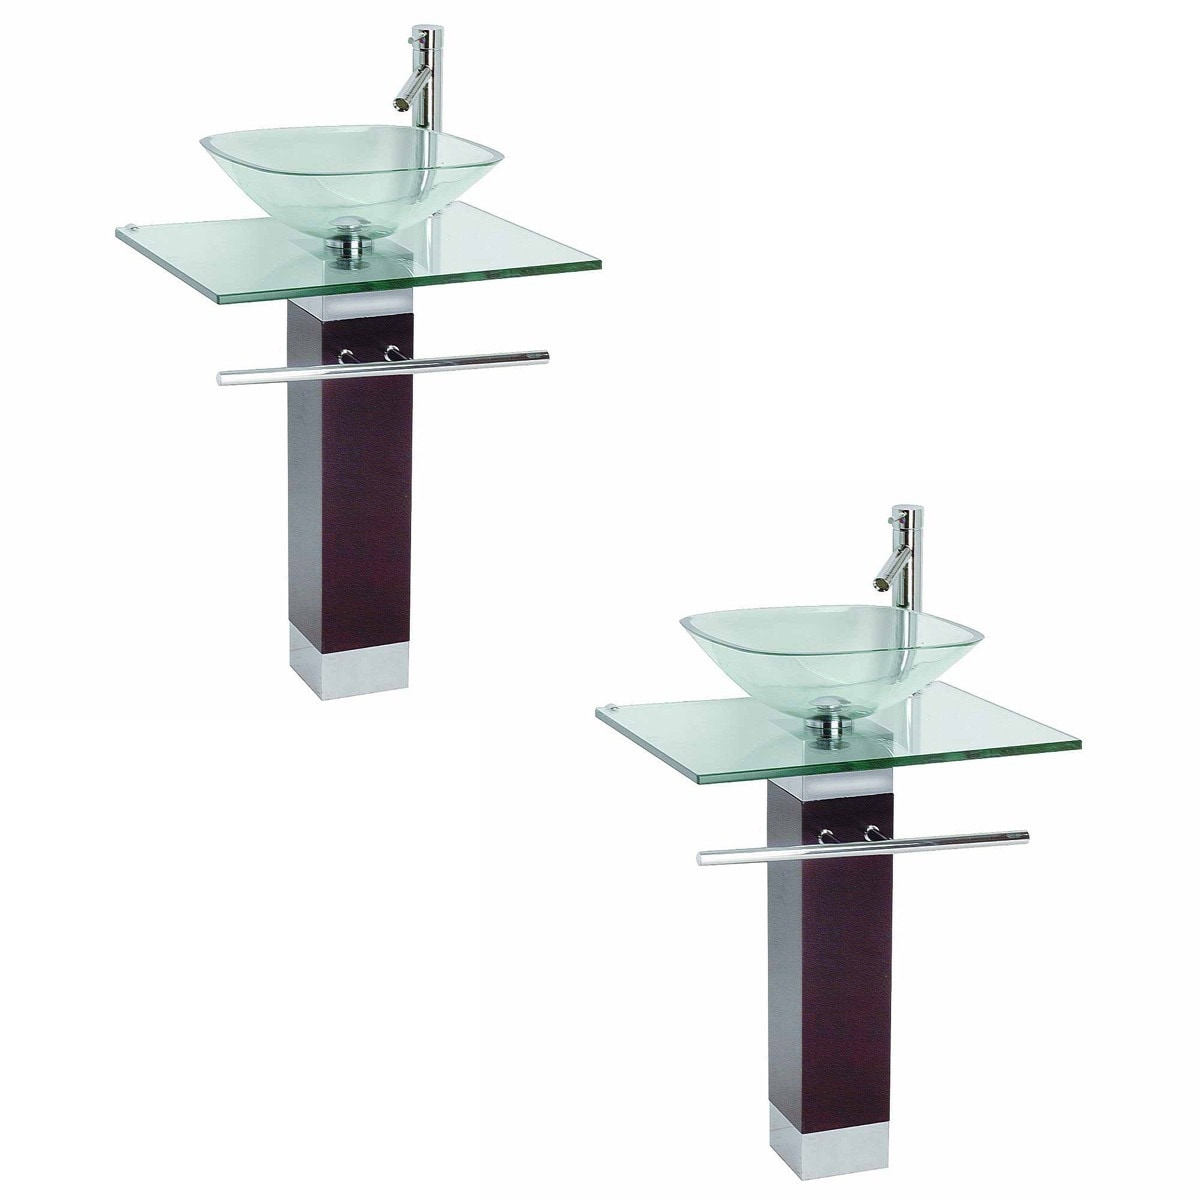 tempered glass pedestal sink chrome faucet towel bar drain pack of 2 clear 1